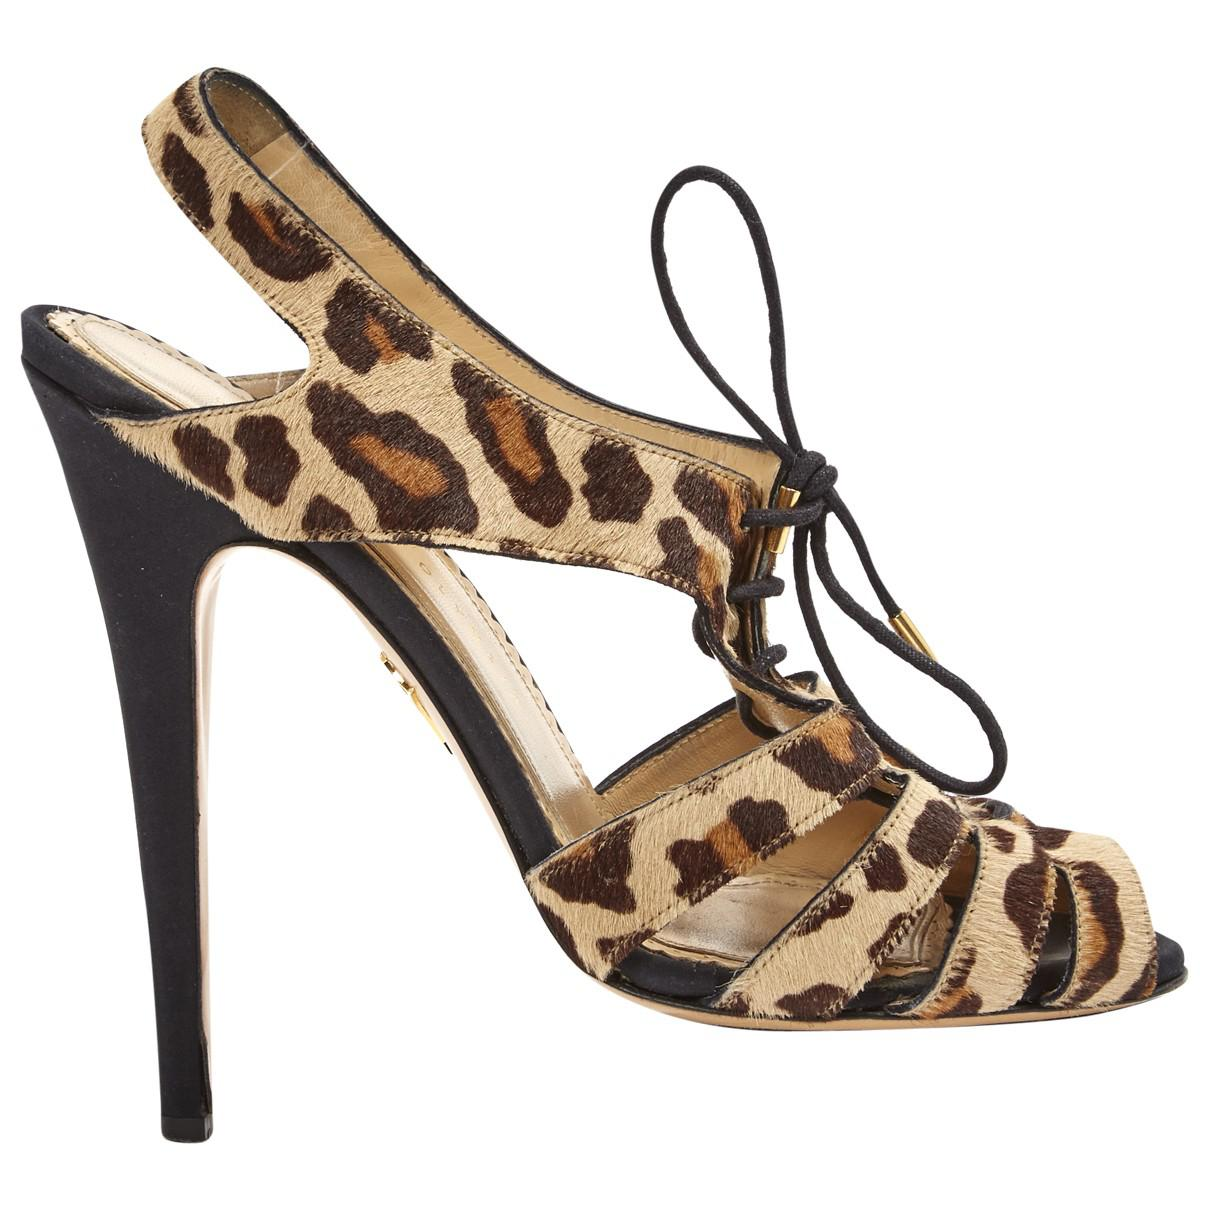 Pre-owned - Pony-style calfskin sandal Charlotte Olympia gWNHPvD